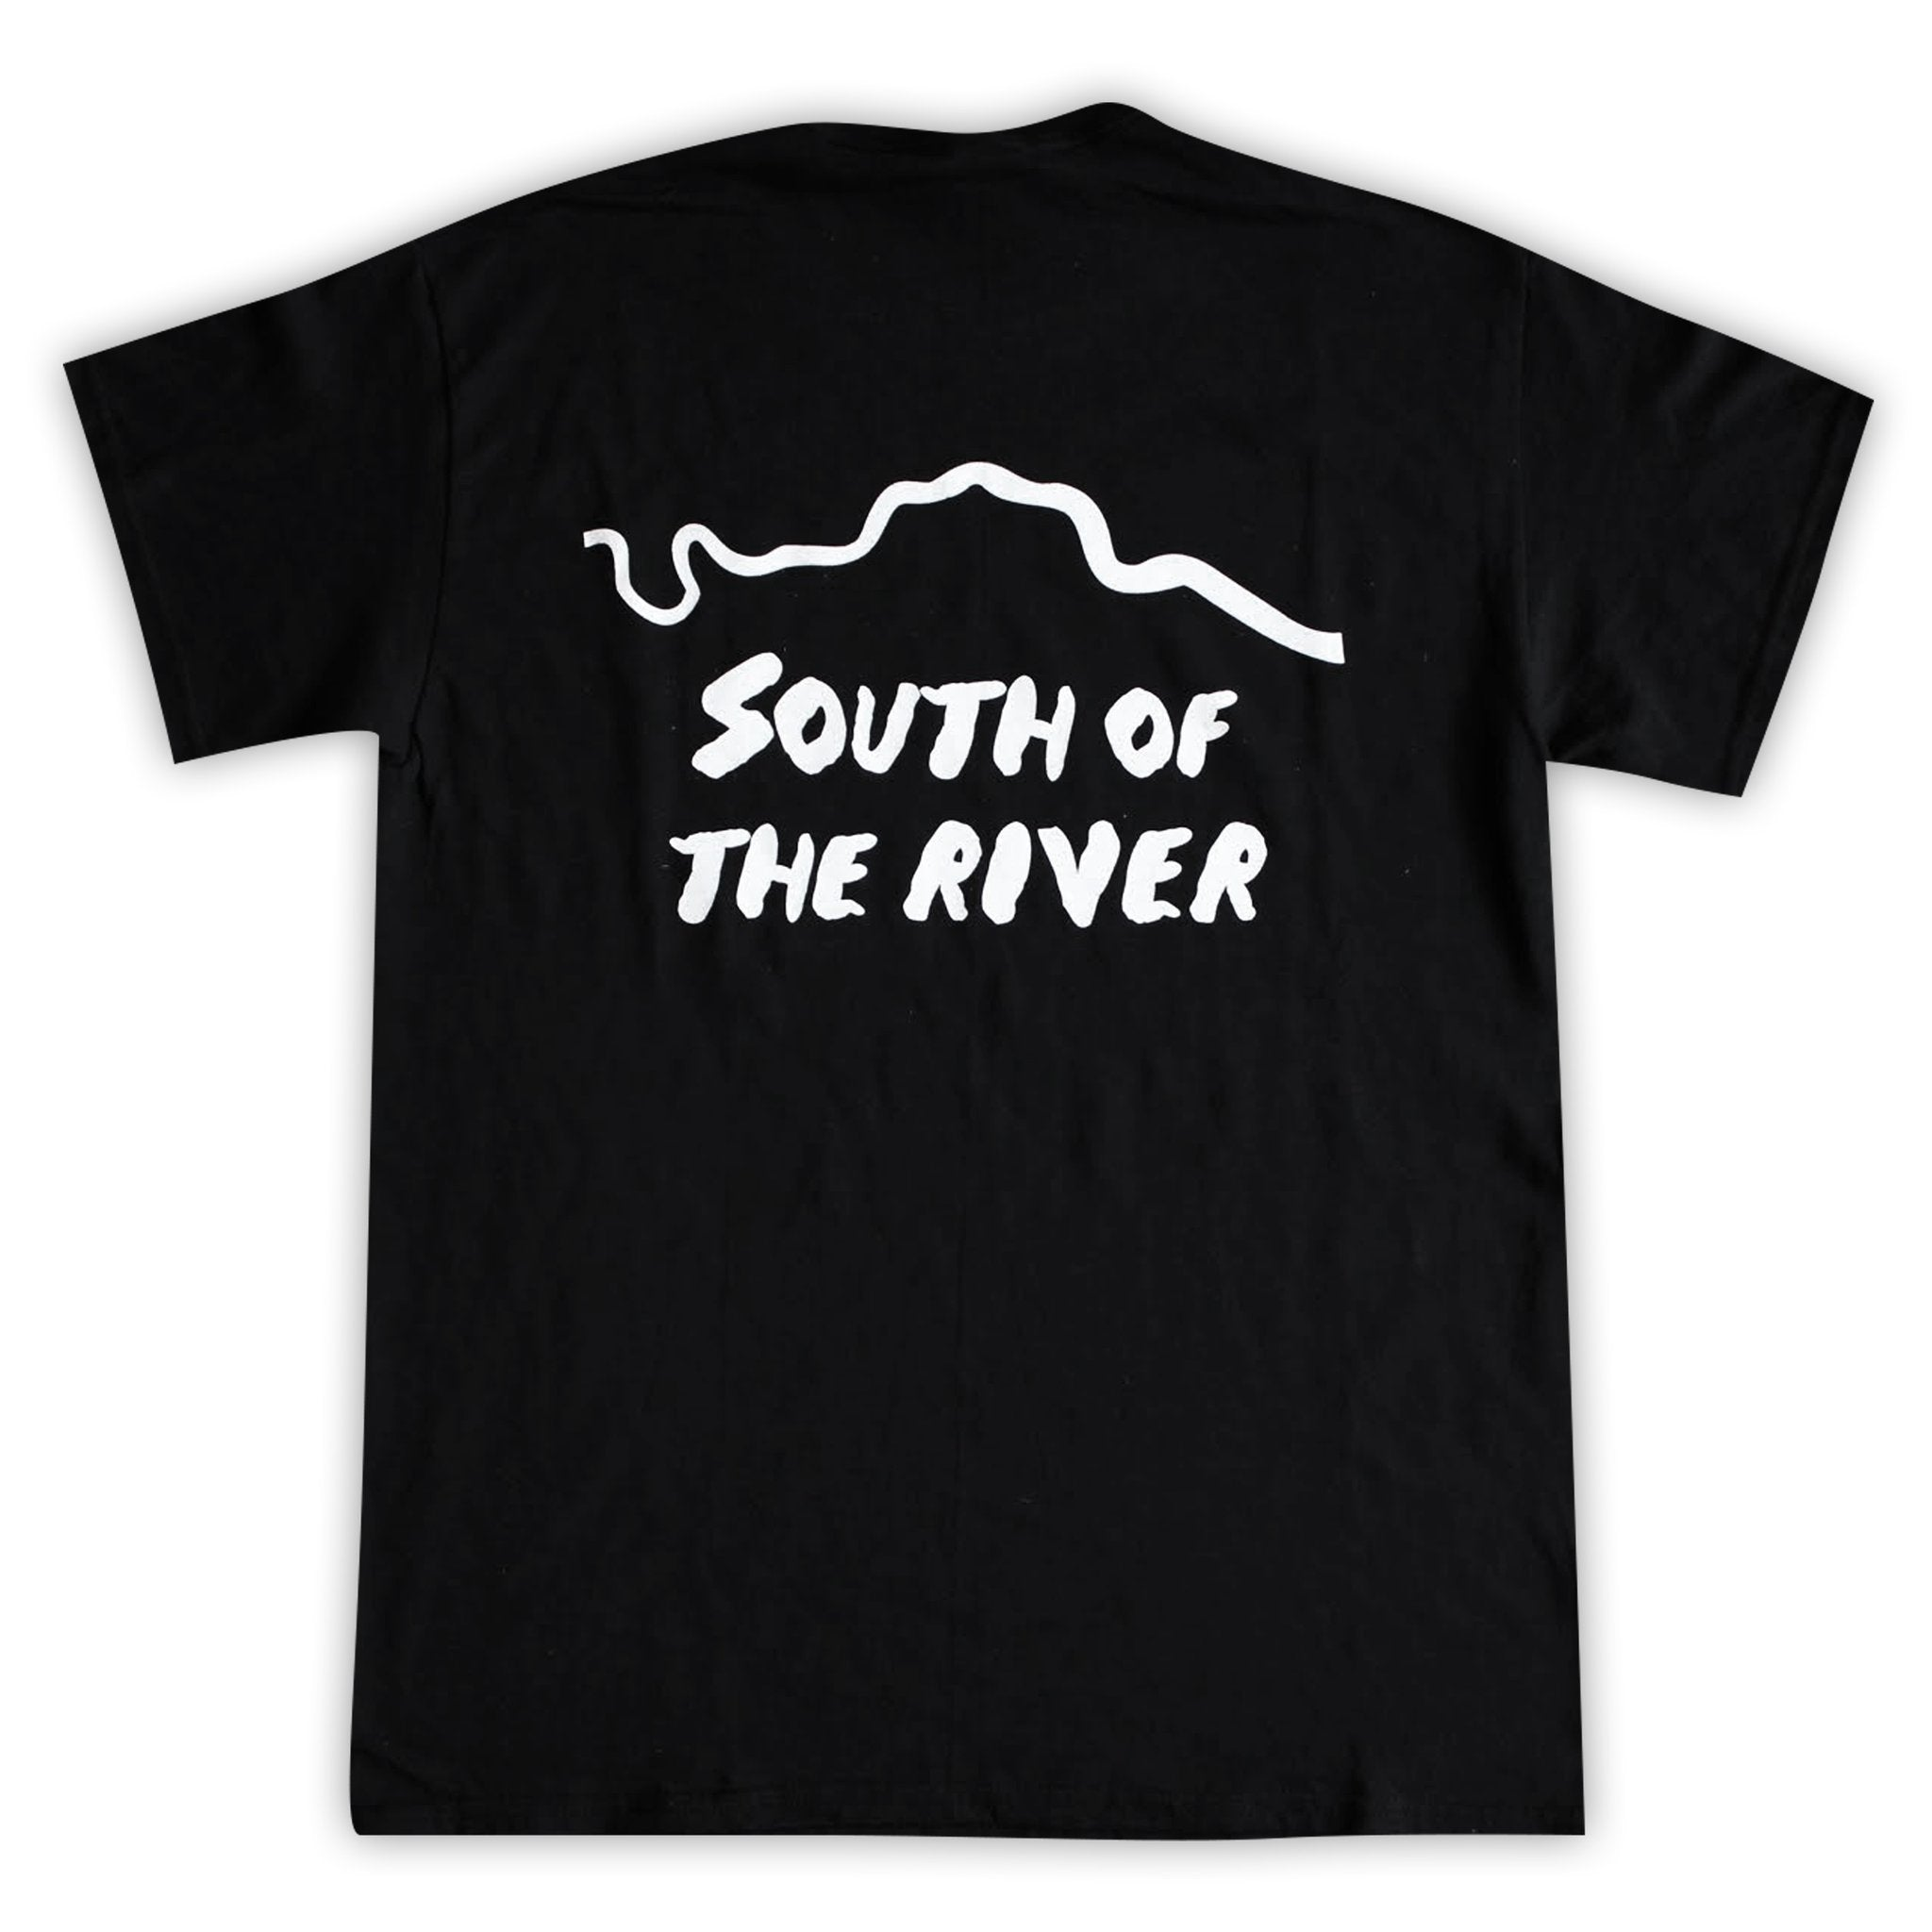 Daily Goods South Of The River T-Shirt Black / White